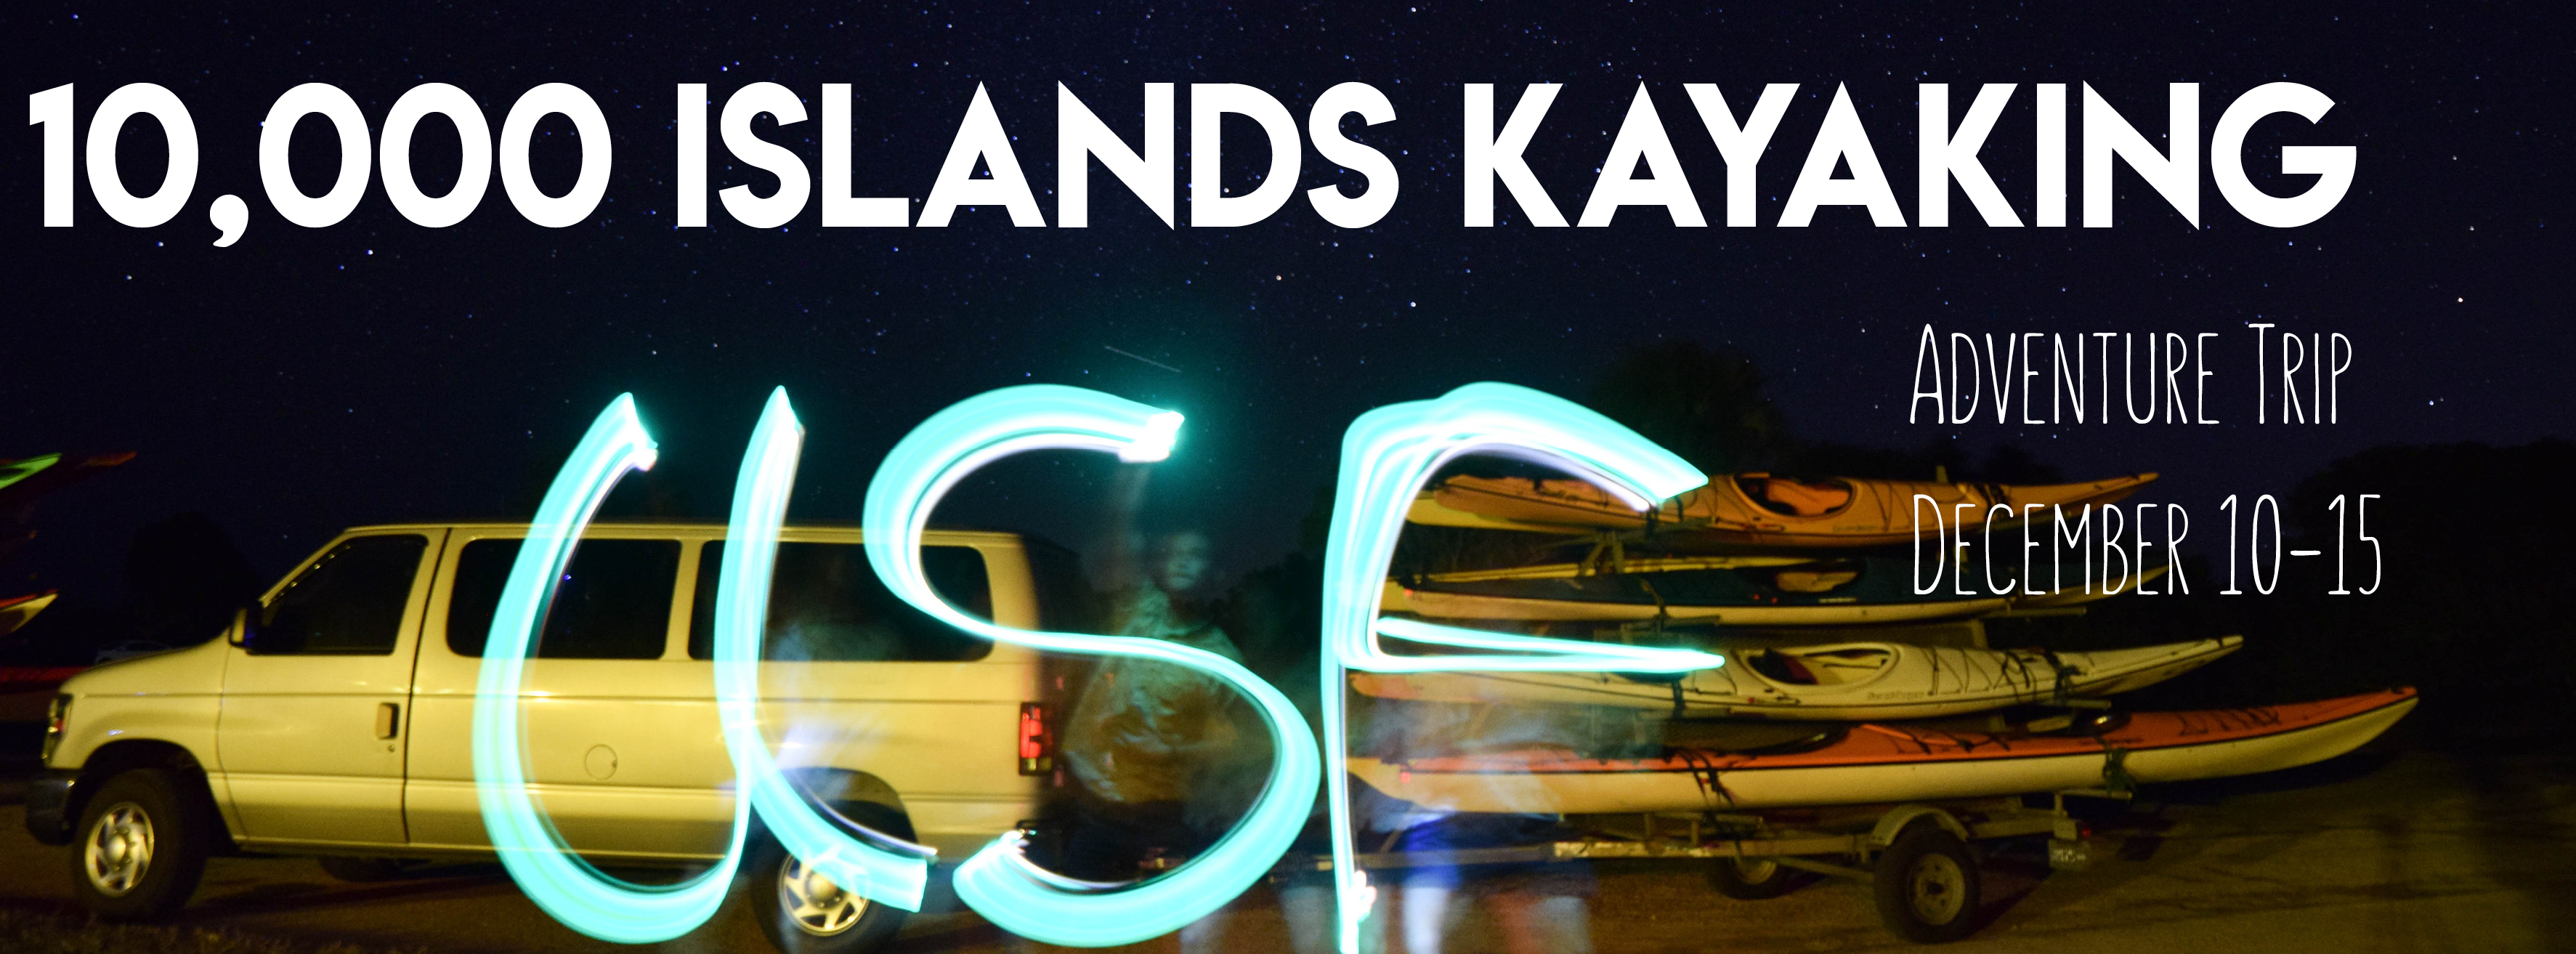 10000 islands kayaking adventure trip